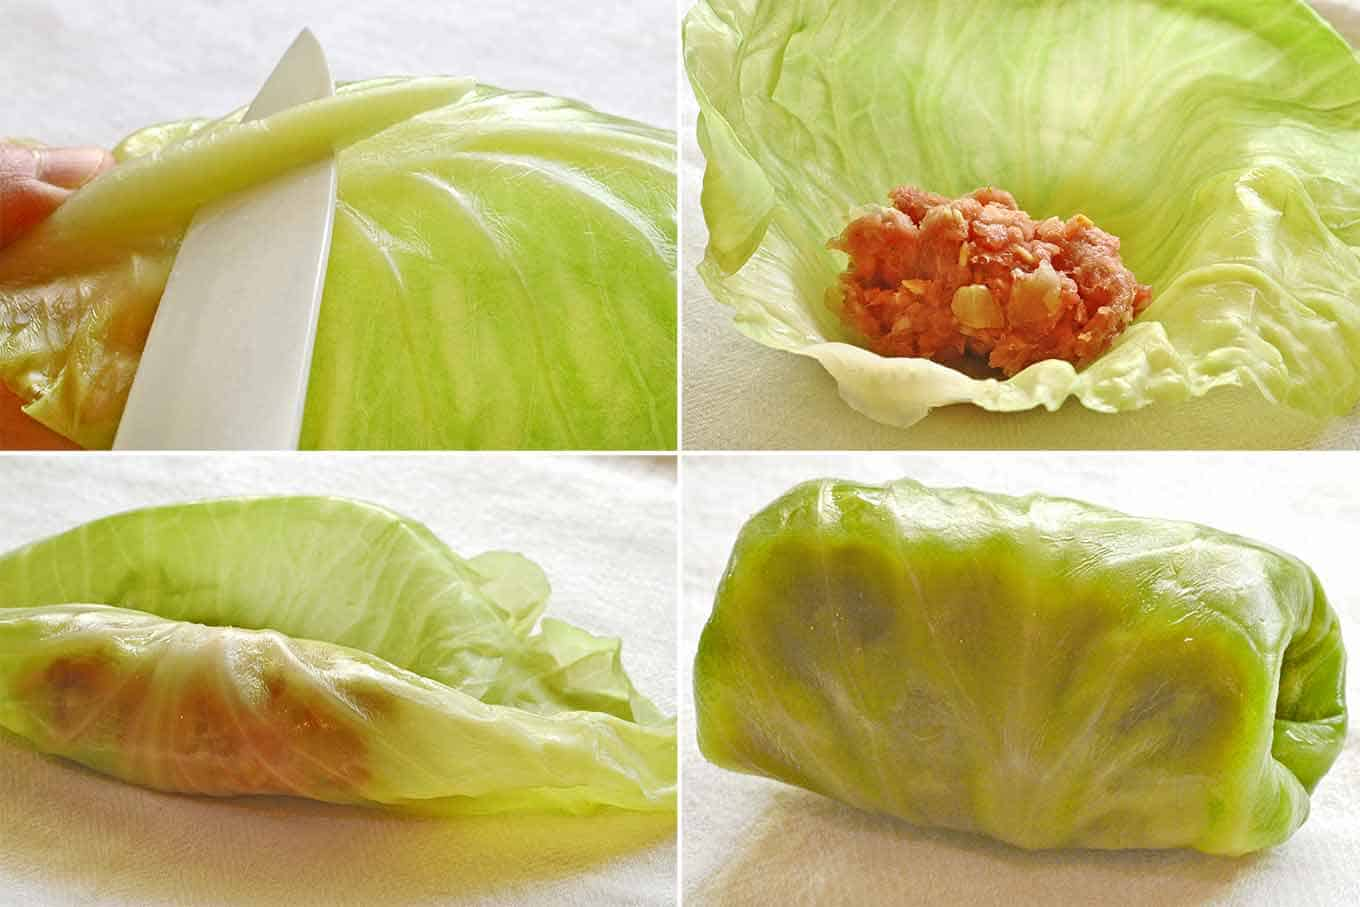 Four steps to making stuffed cabbage rolls, trimming the outer vein, adding the filling, rolling the cabbage, tucking in the ends to seal